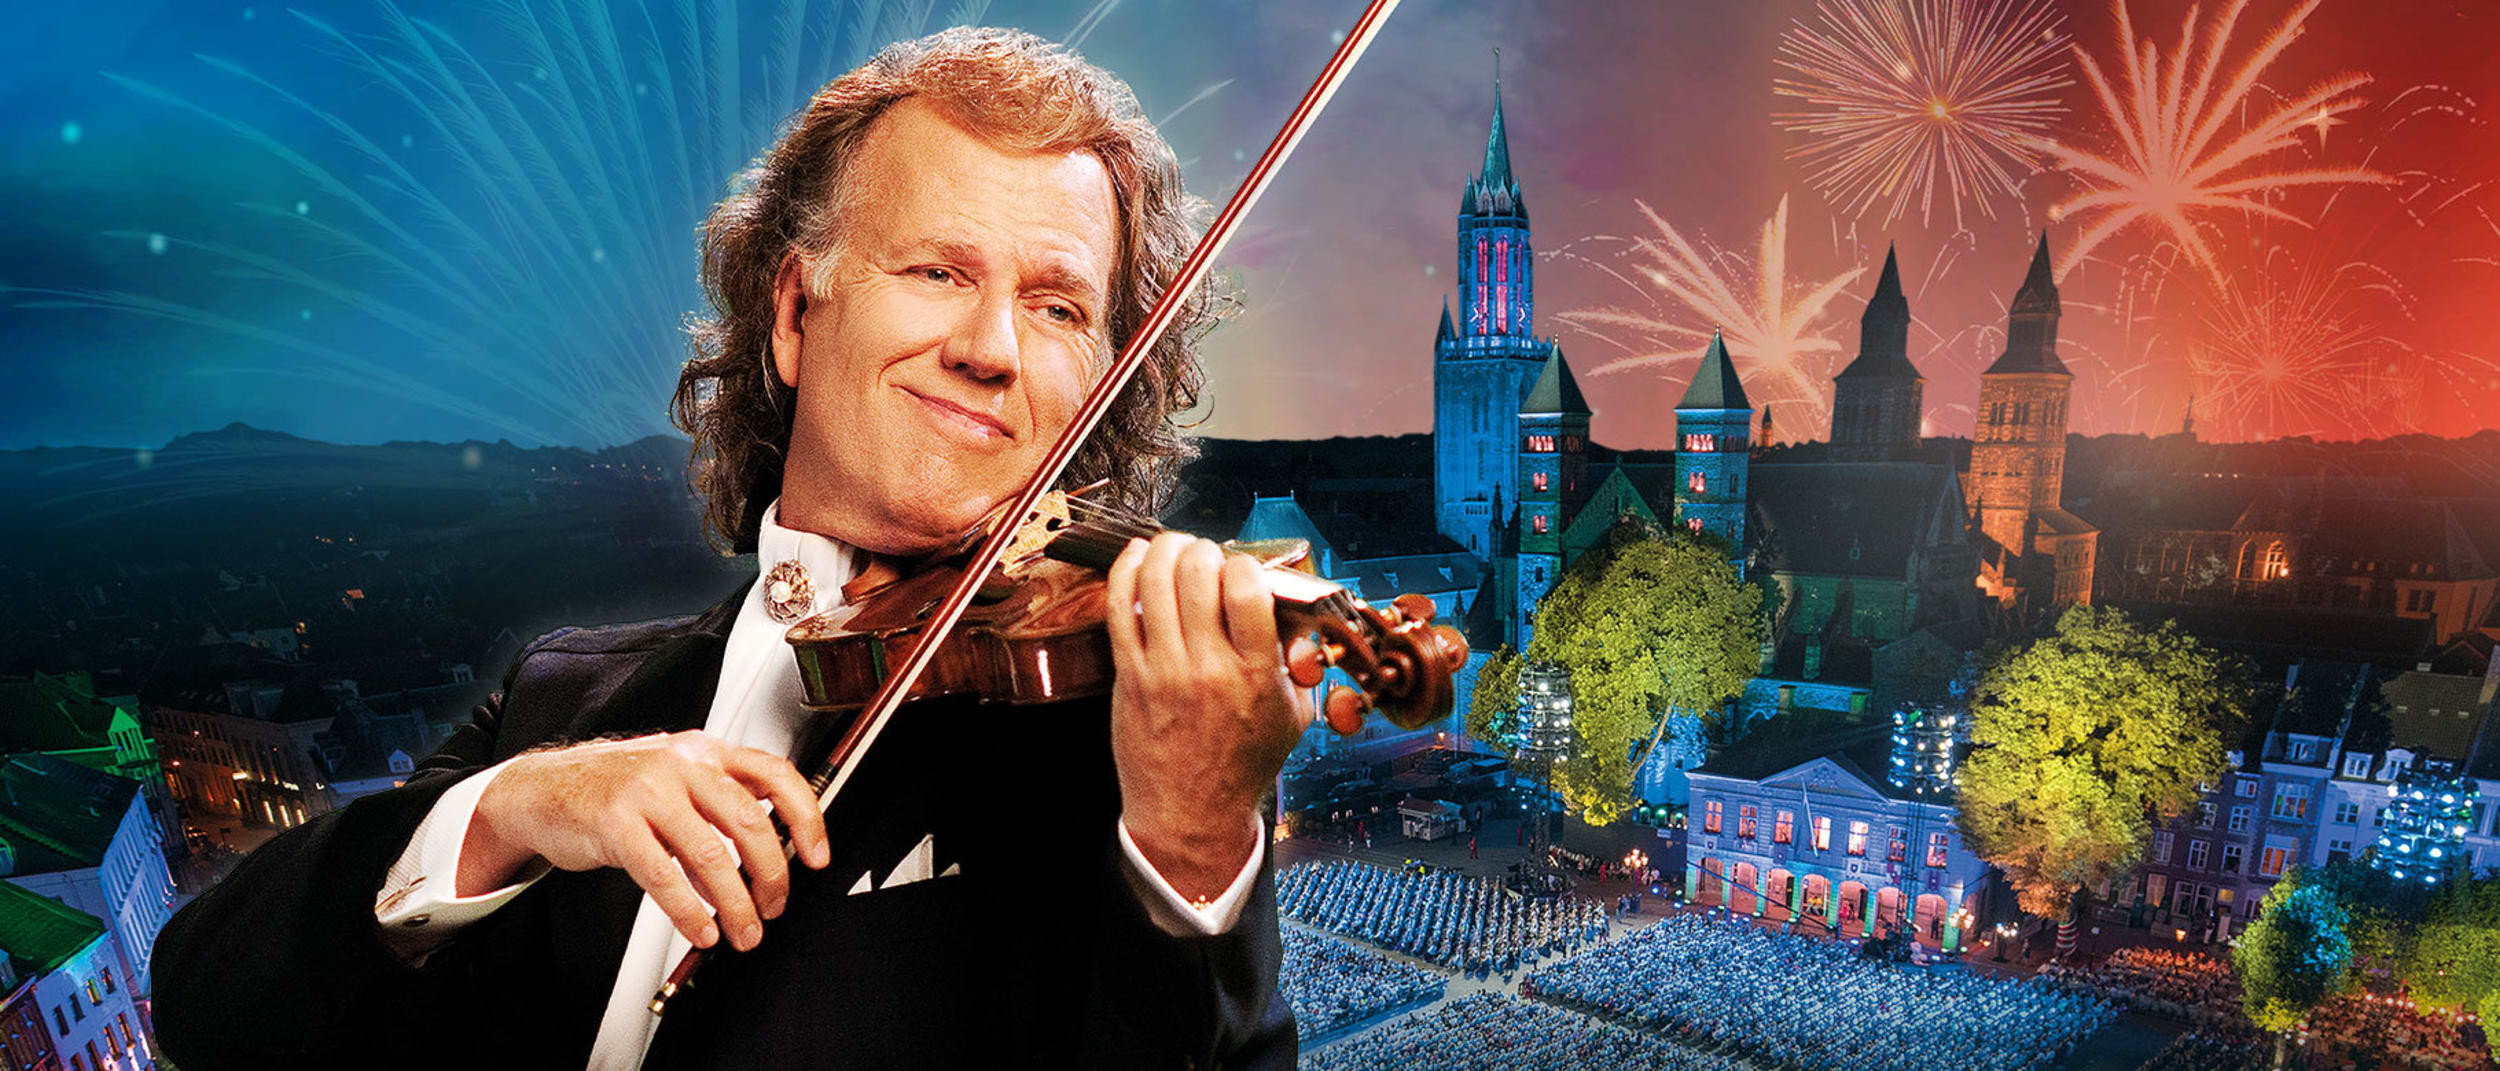 Event Cinemas: André Rieu's Sydney Town Hall Concert Screening